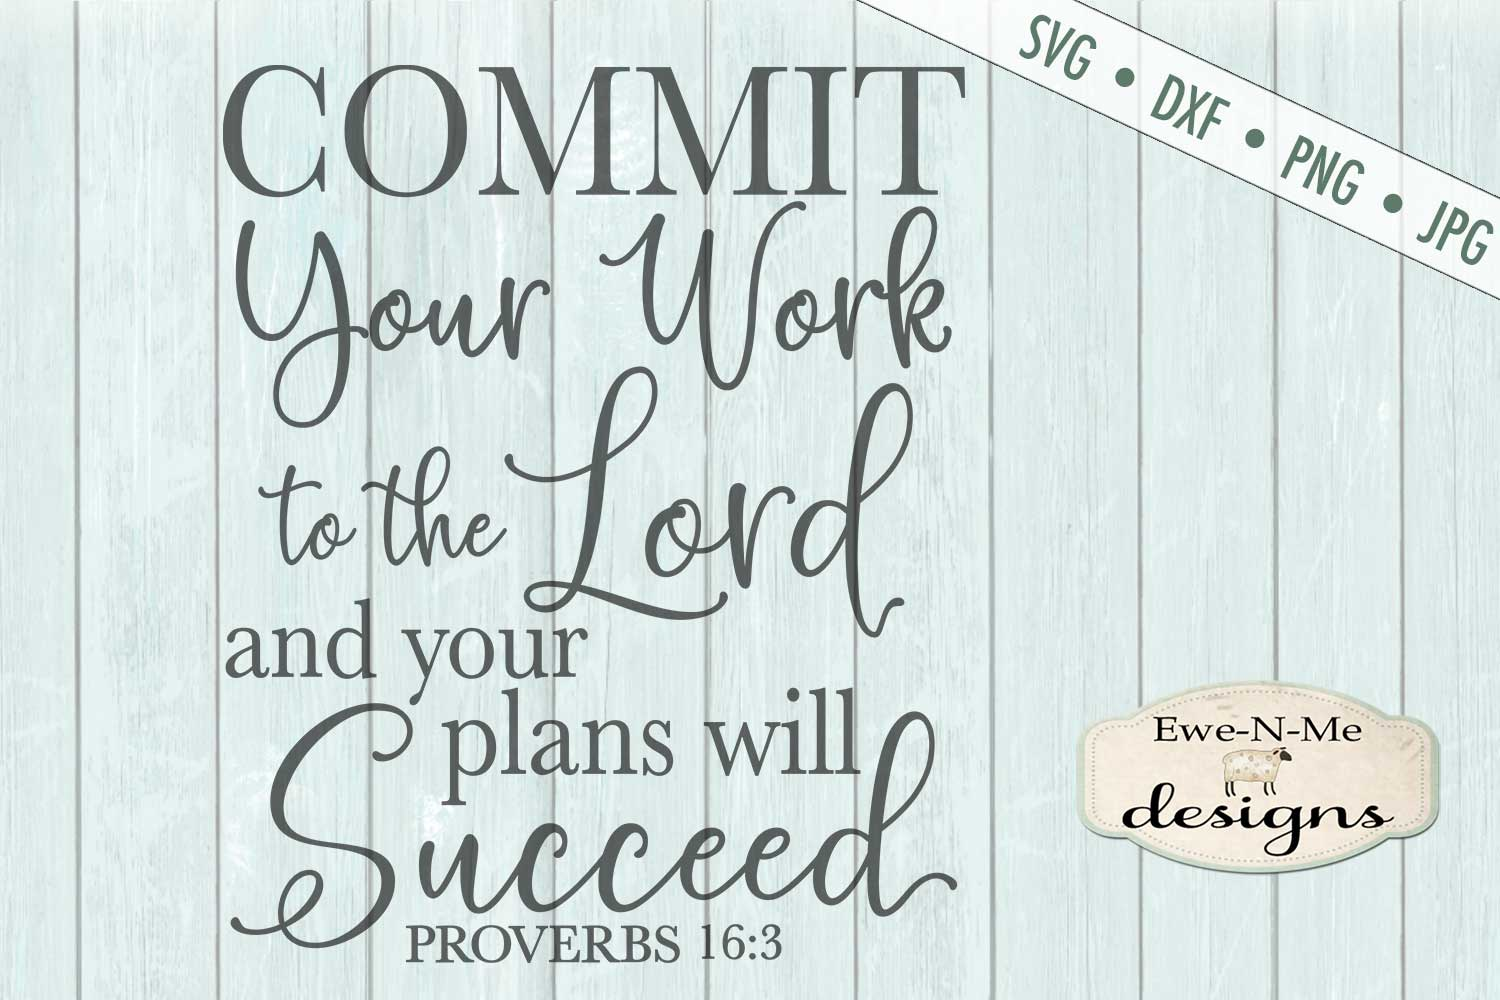 Commit Your Work To The Lord - Bible Verse Proverbs 16 - SVG example image 3